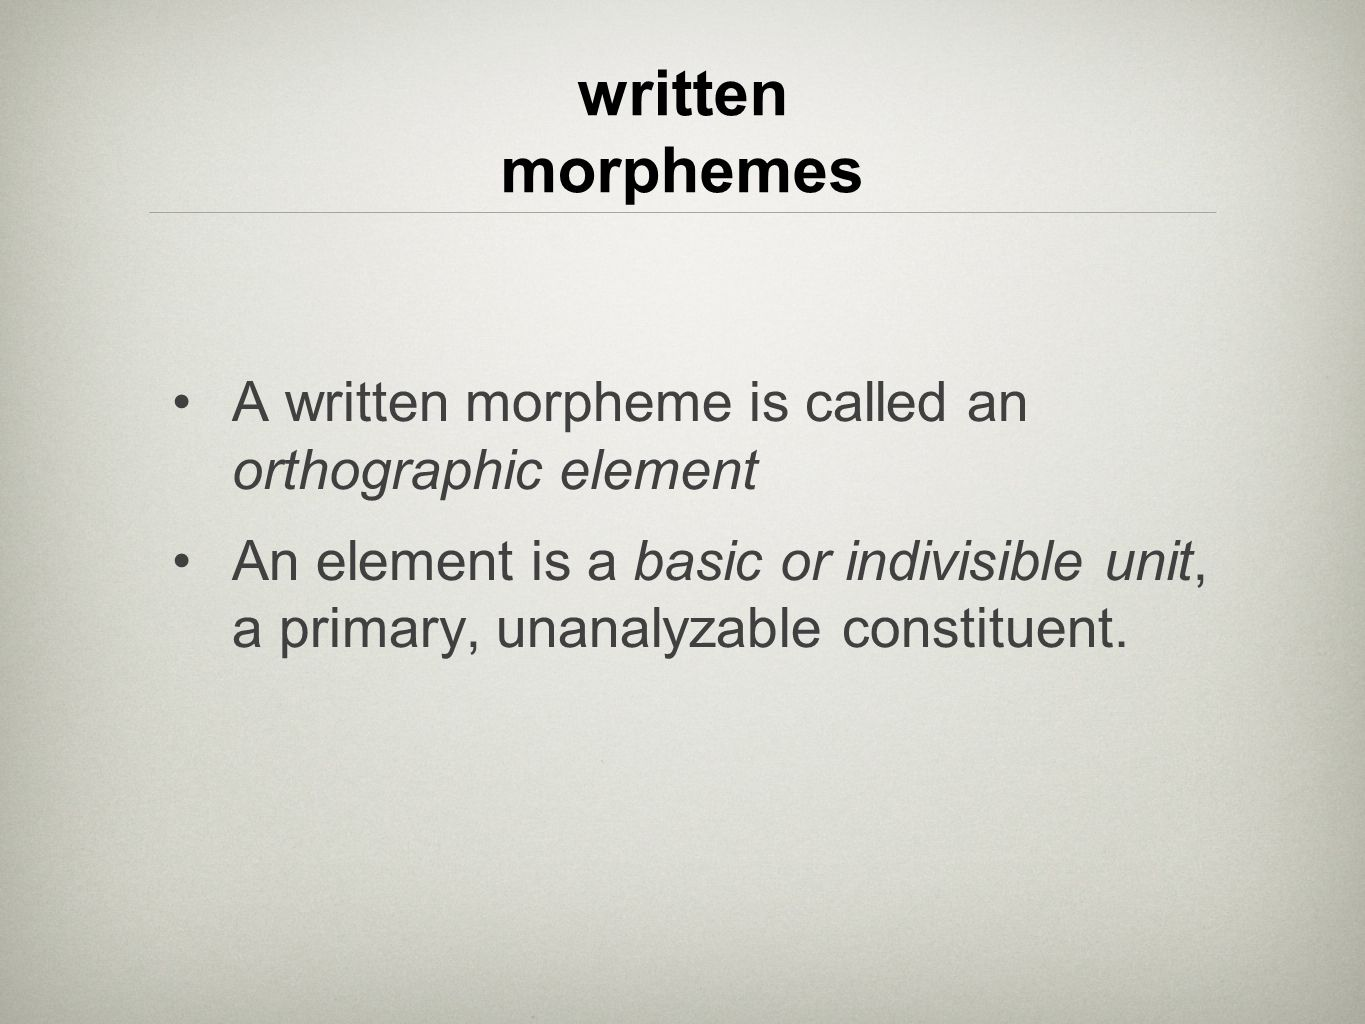 written morphemes A written morpheme is called an orthographic element